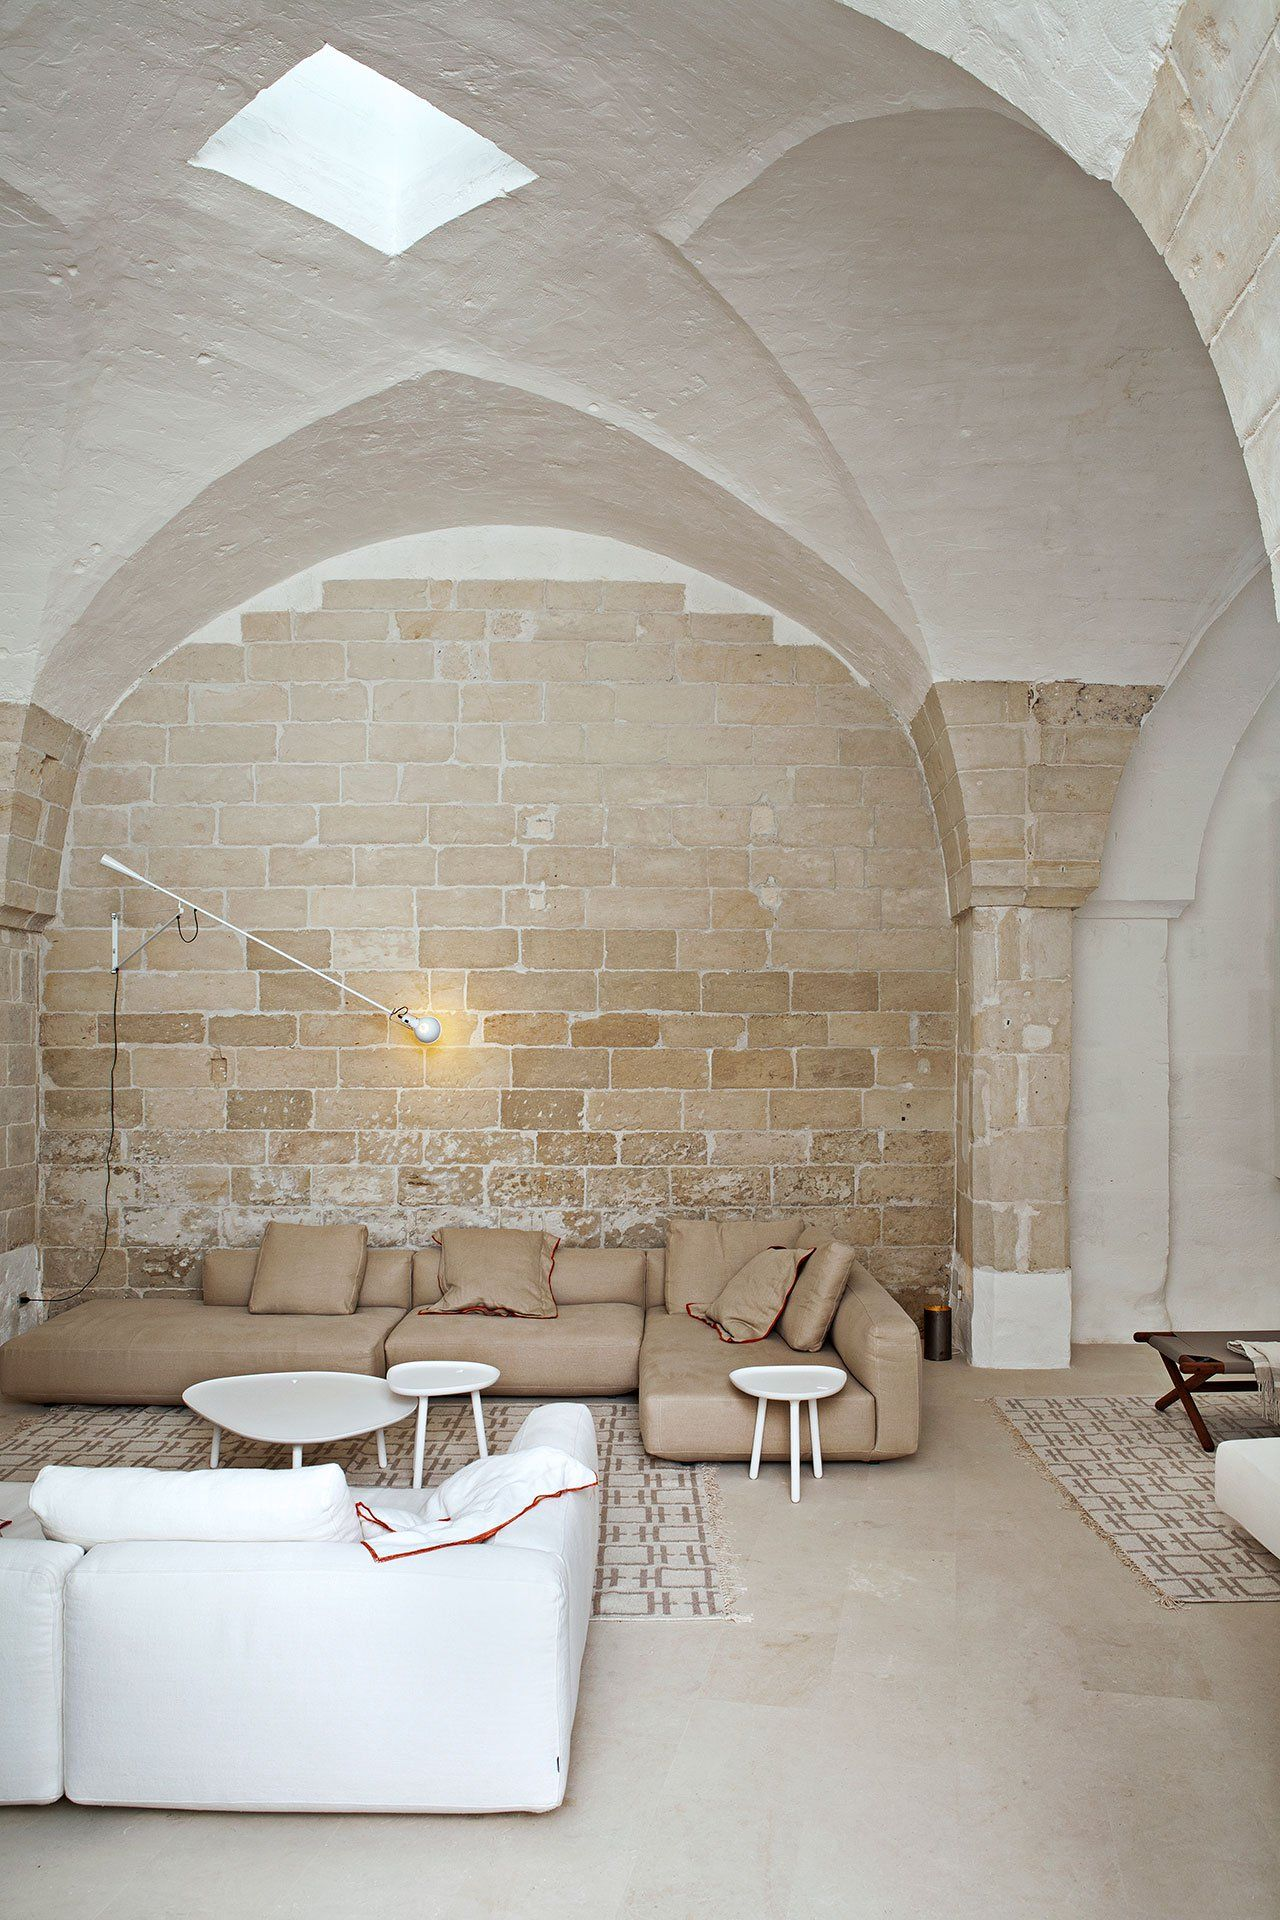 The home of ludovica and roberto palomba interiors architecture